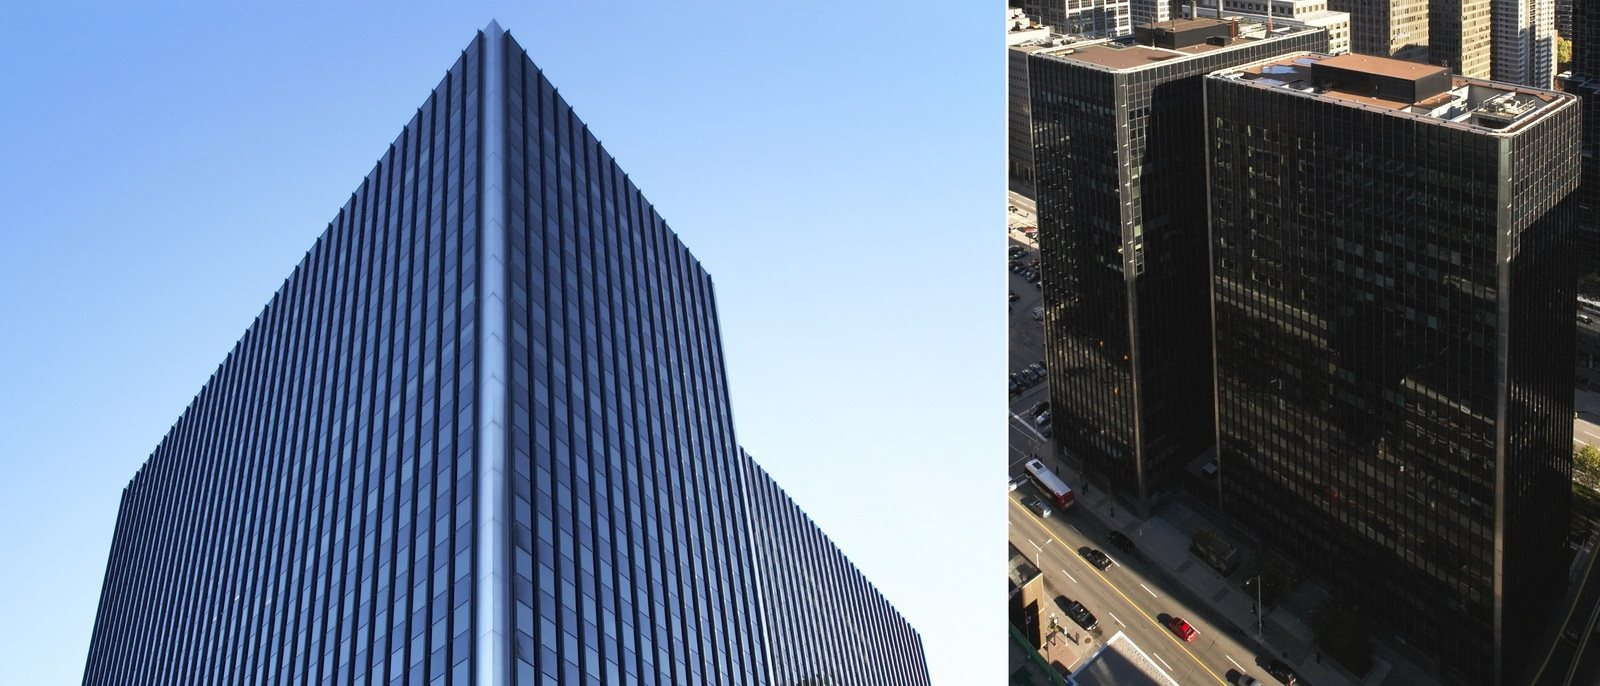 A tall black building that is located next to one that looks nearly identical to it forming a T shape.